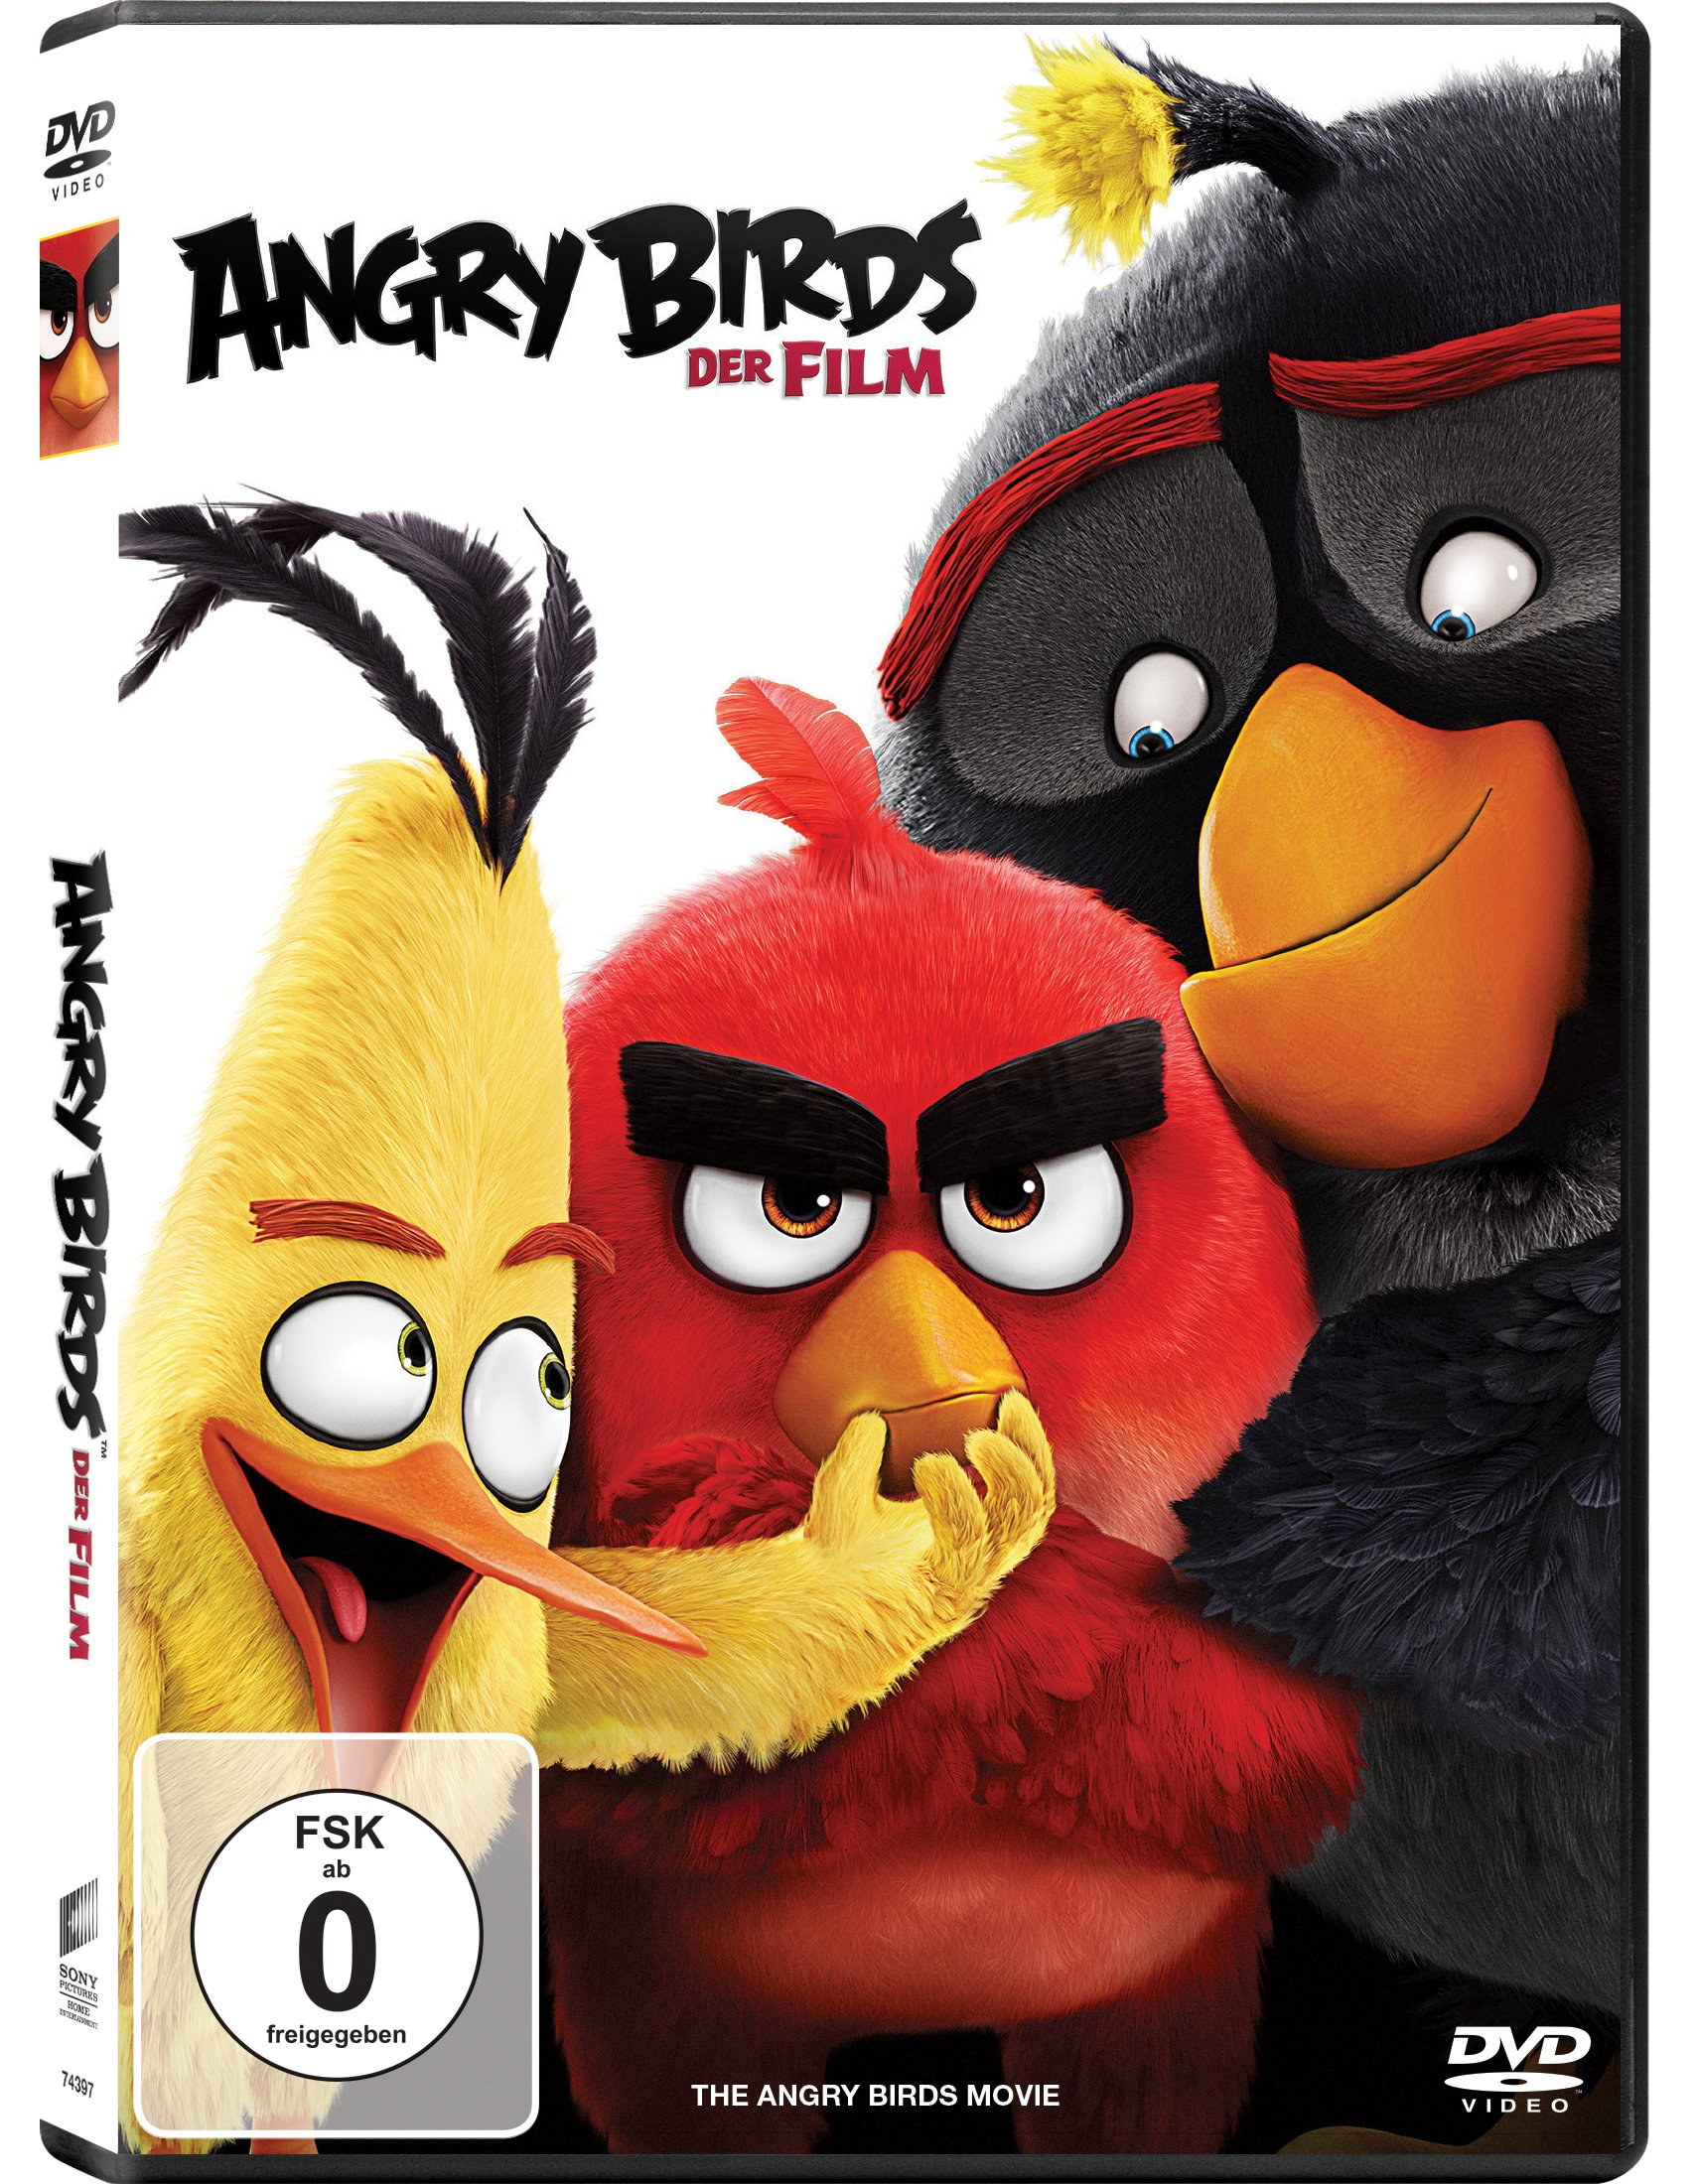 : Angry Birds Der Film German 2016 Dl BdriP x264-CiNeviSiOn